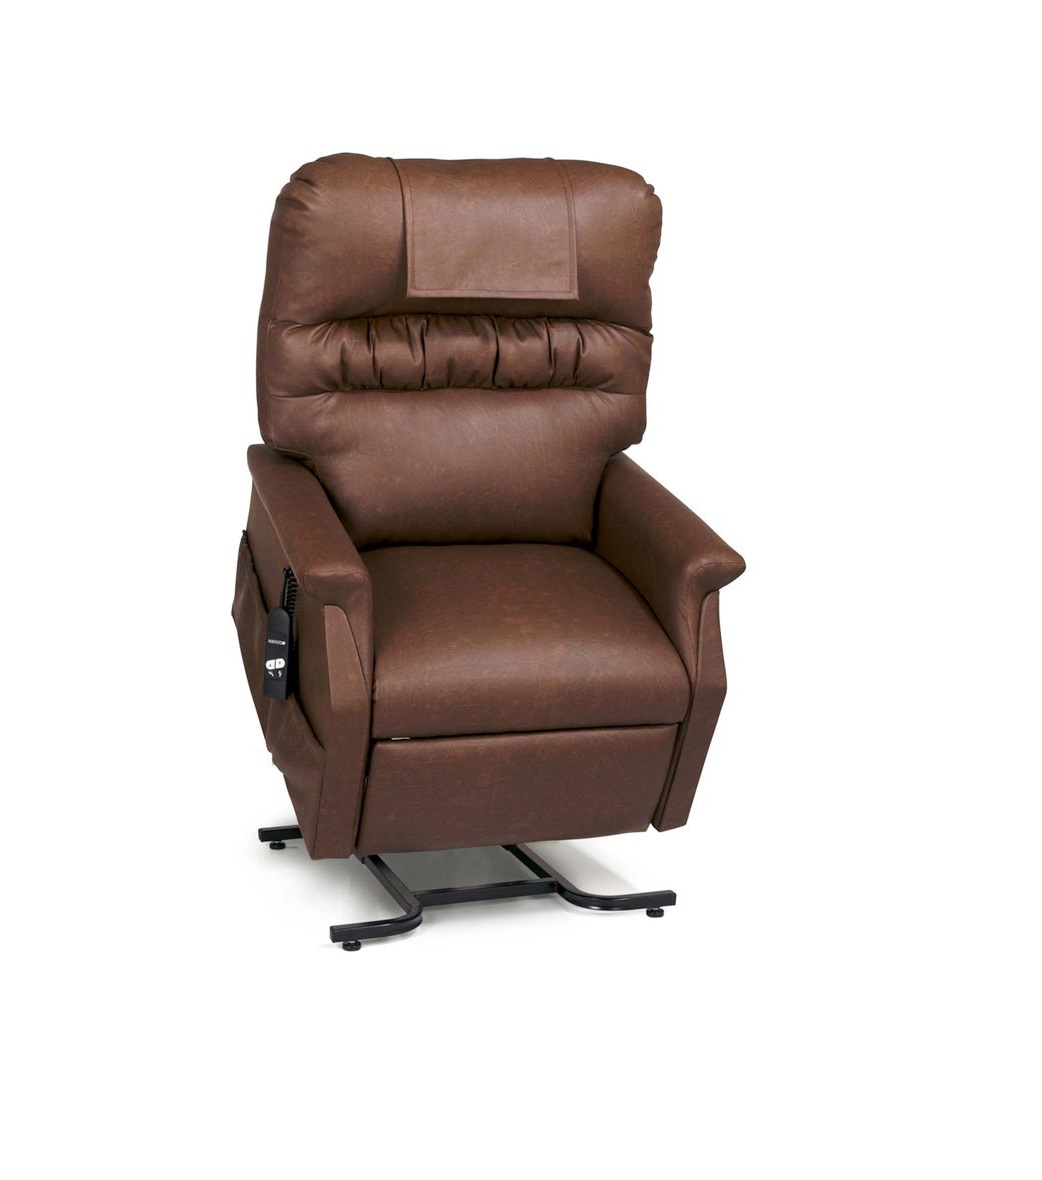 new style ef6a9 39df6 Power Lift Recliner Rental default image. A Golden Technologies Monarch lift  chair in the upright